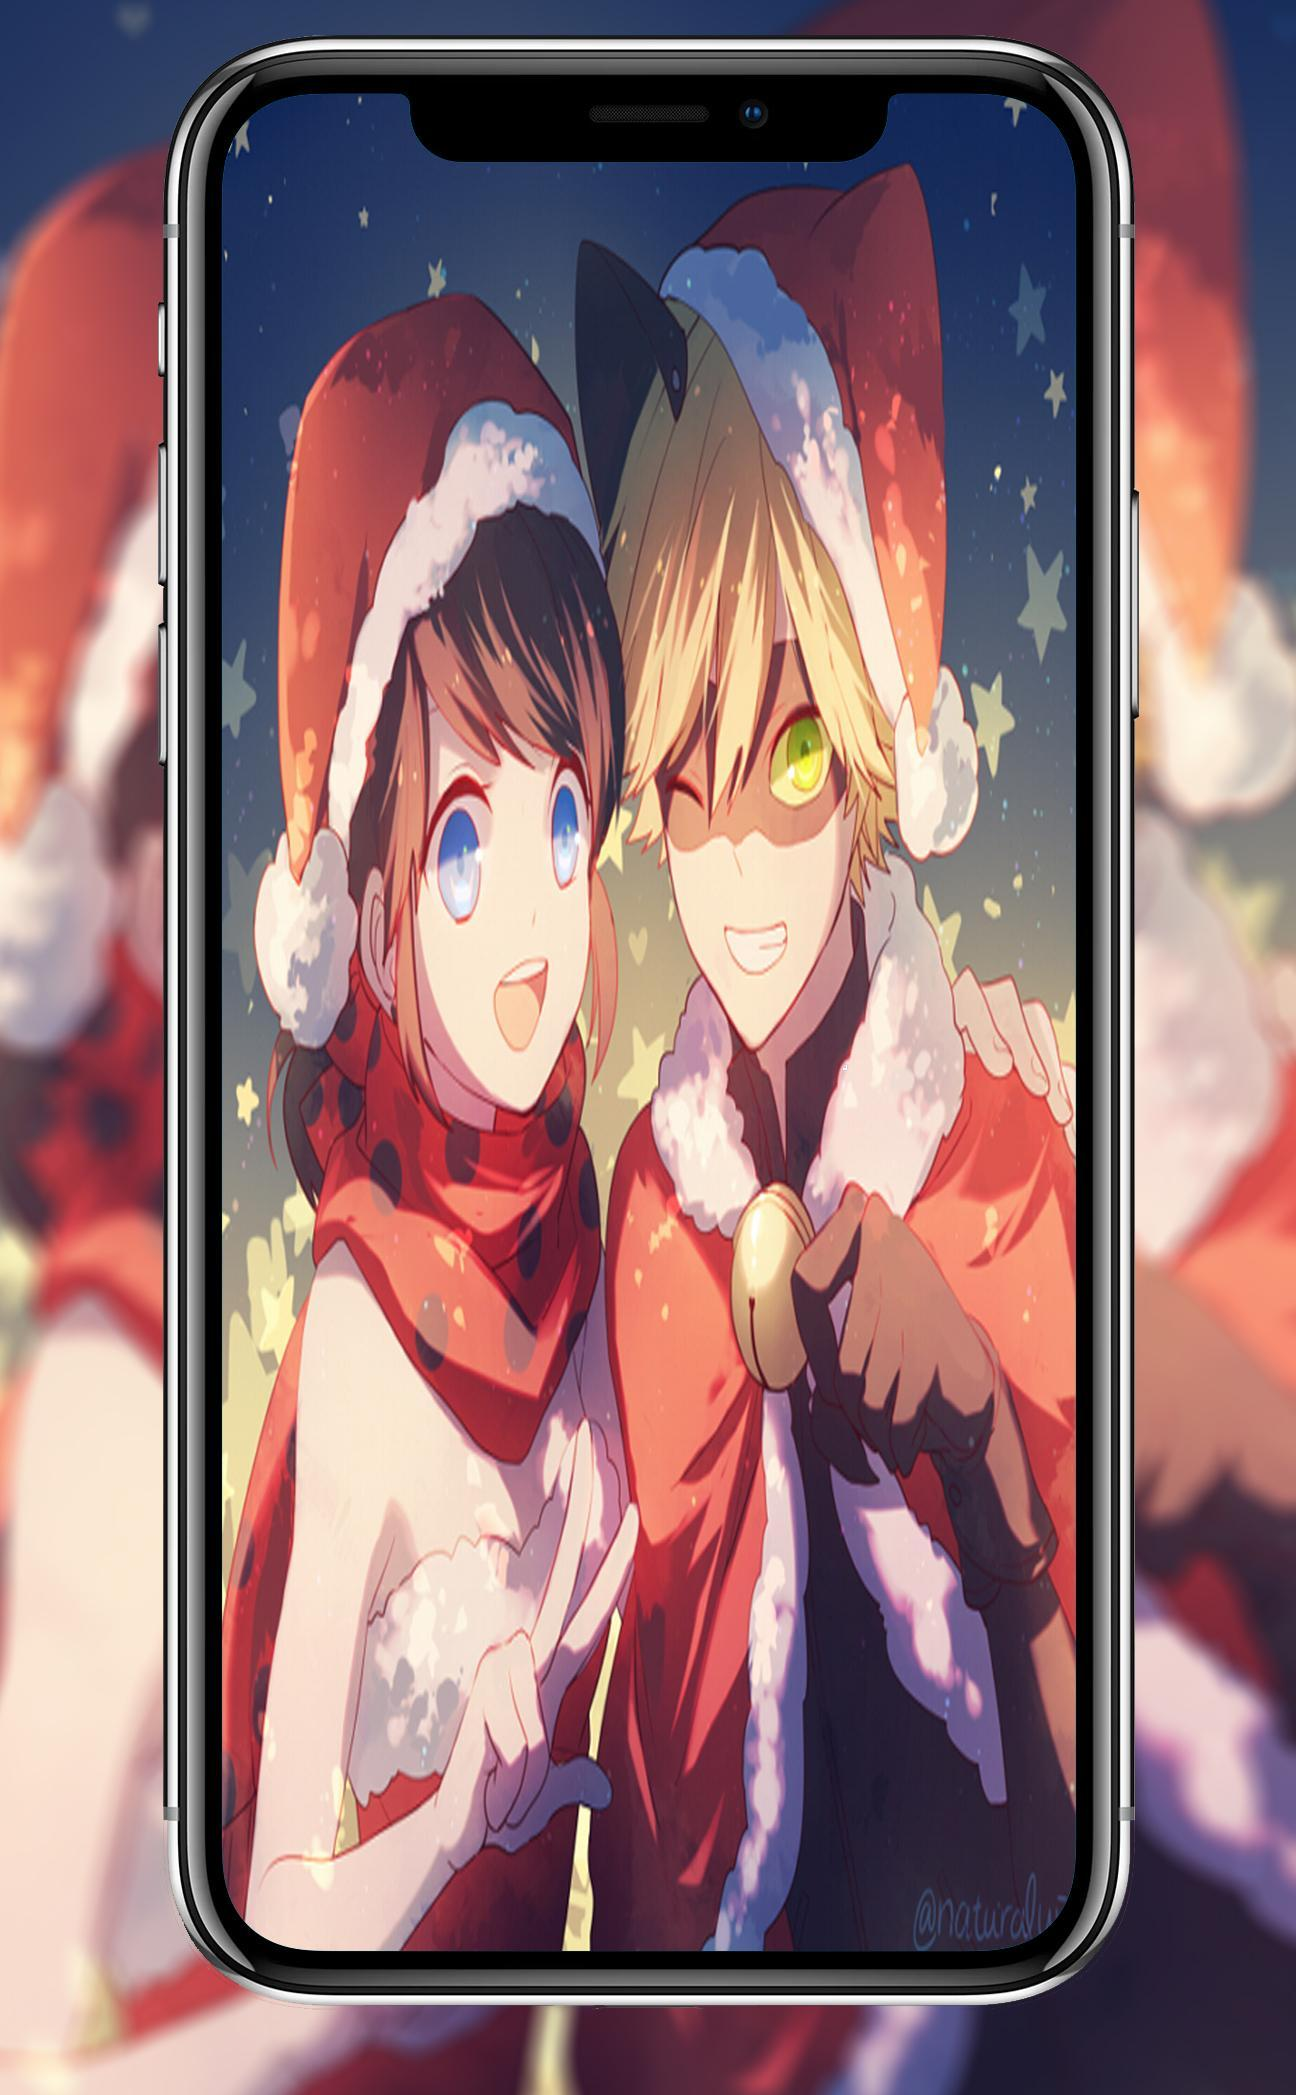 Christmas Anime.100000 Christmas Anime Wallpaper For Android Apk Download